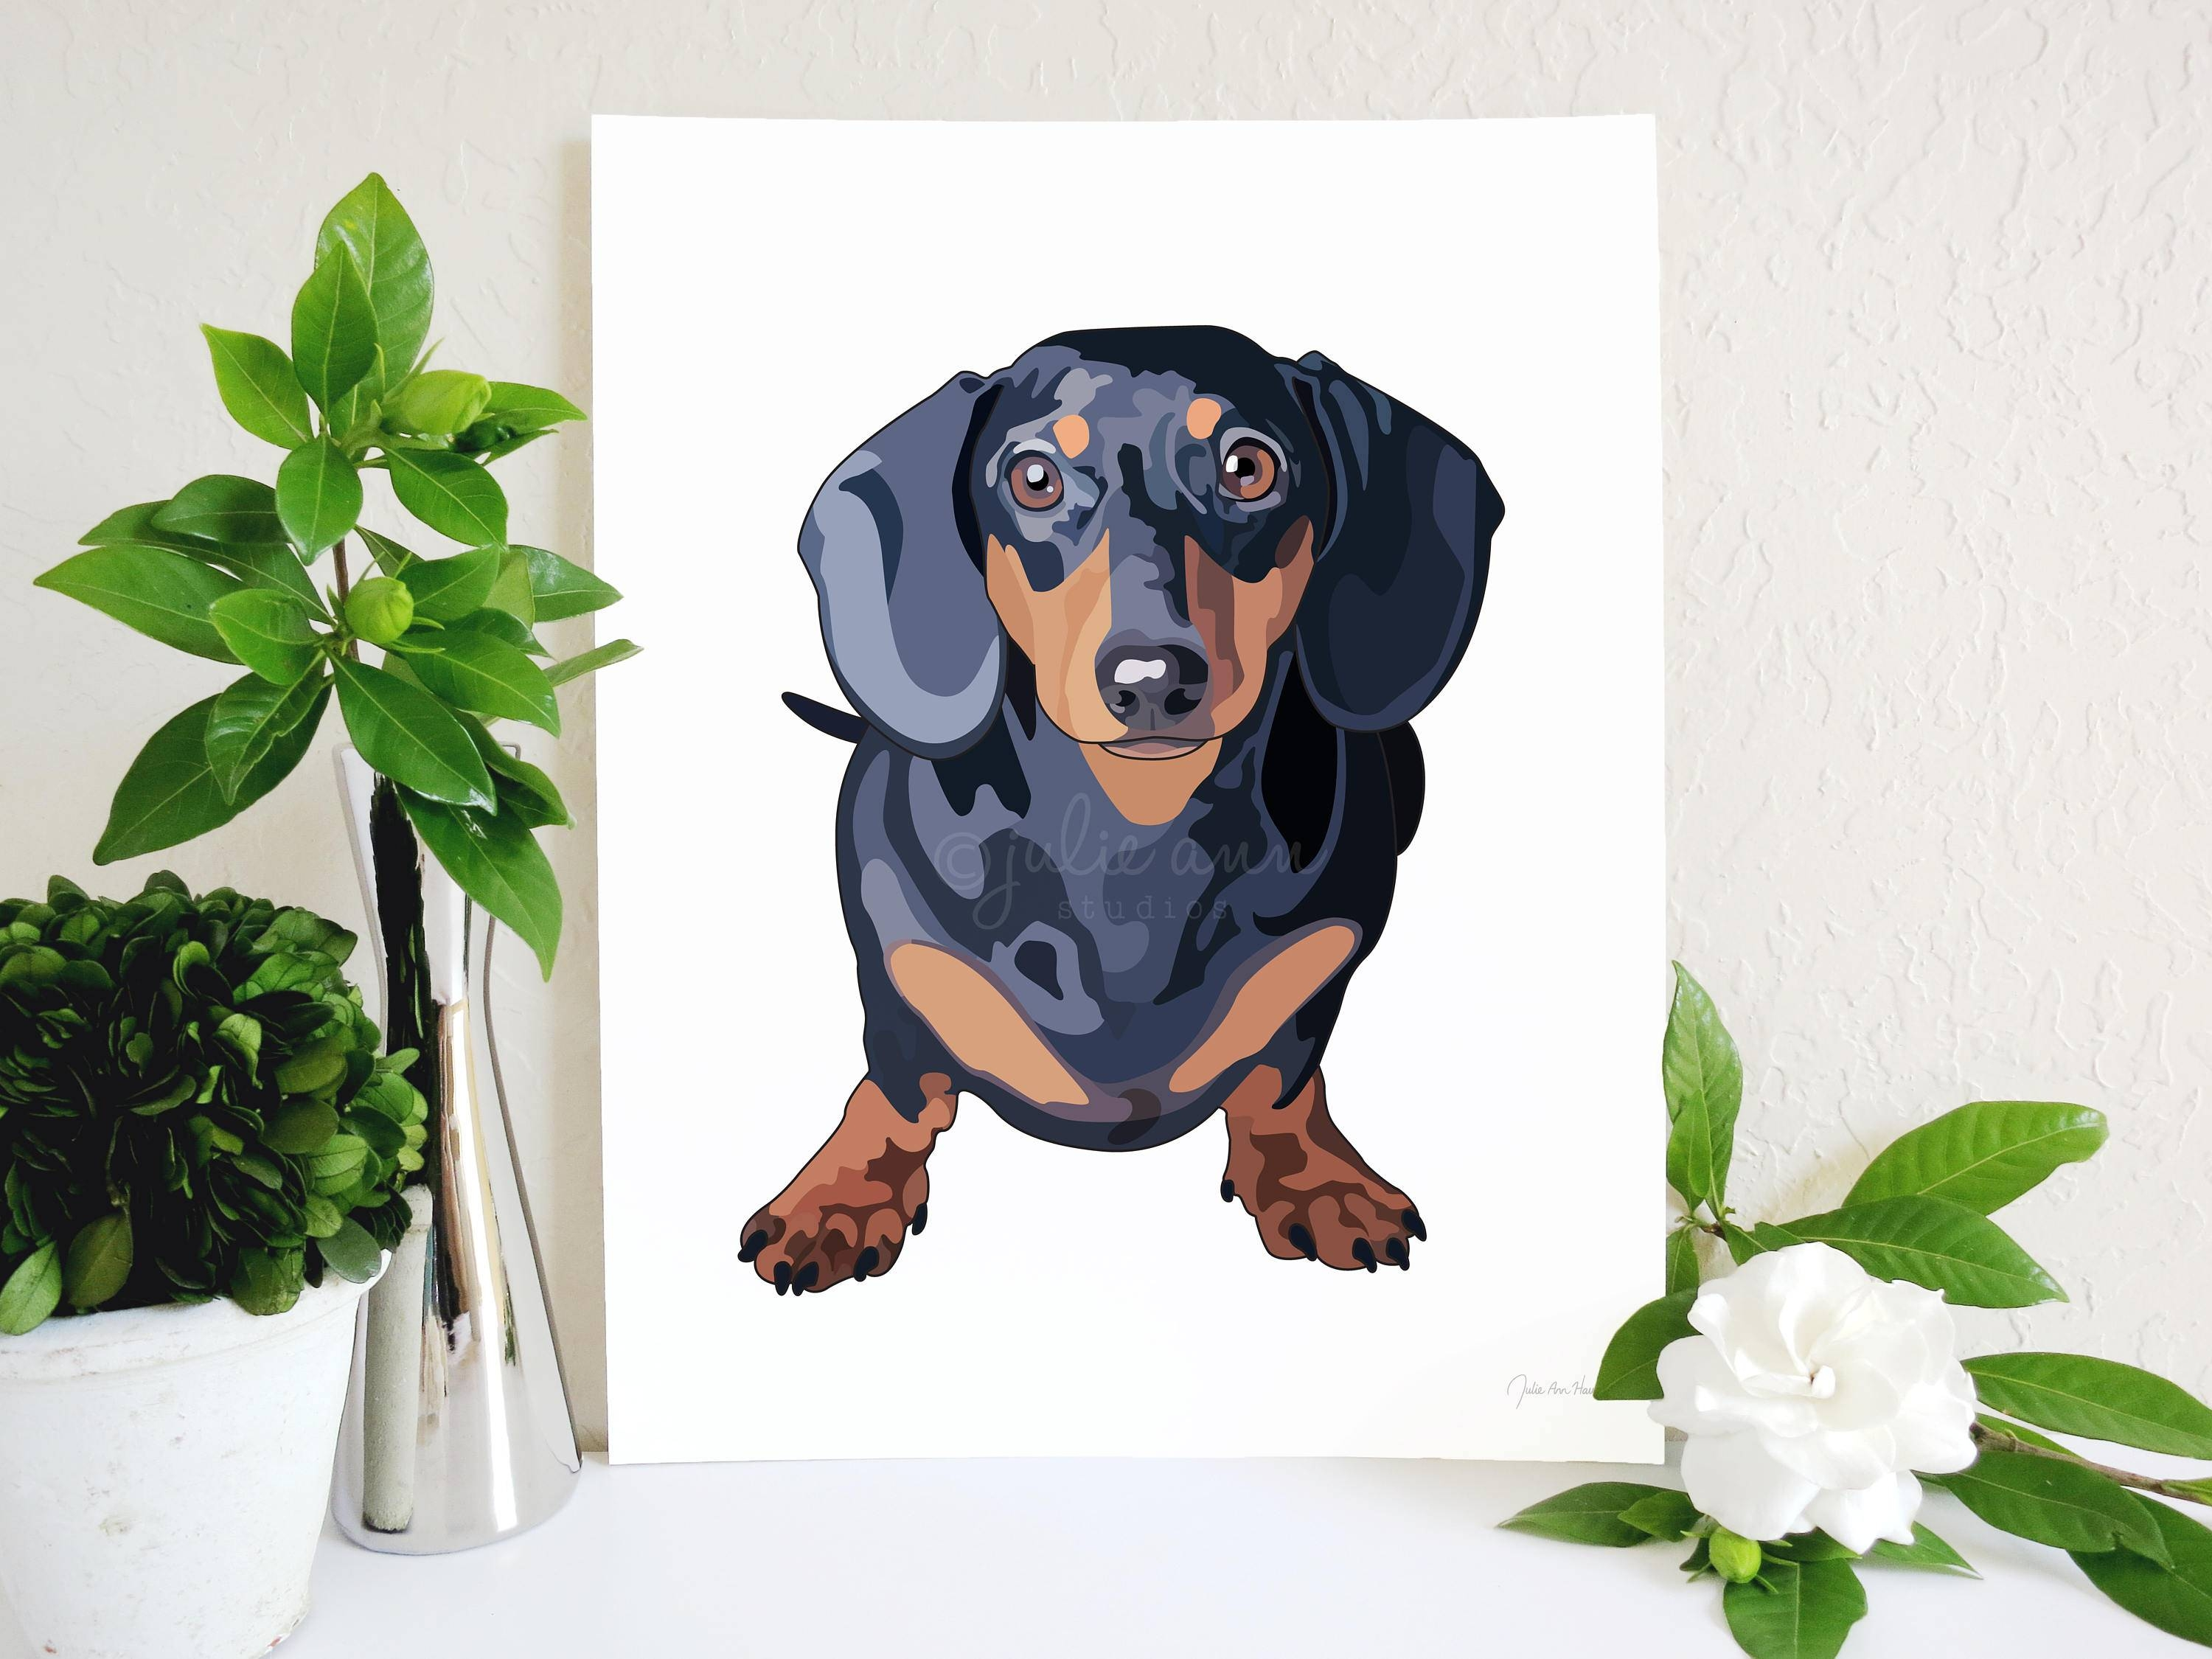 Dachshund Art Print Doxie Art Dachshund Decor Doxie Wall Regarding Newest Dachshund Wall Art (View 7 of 22)